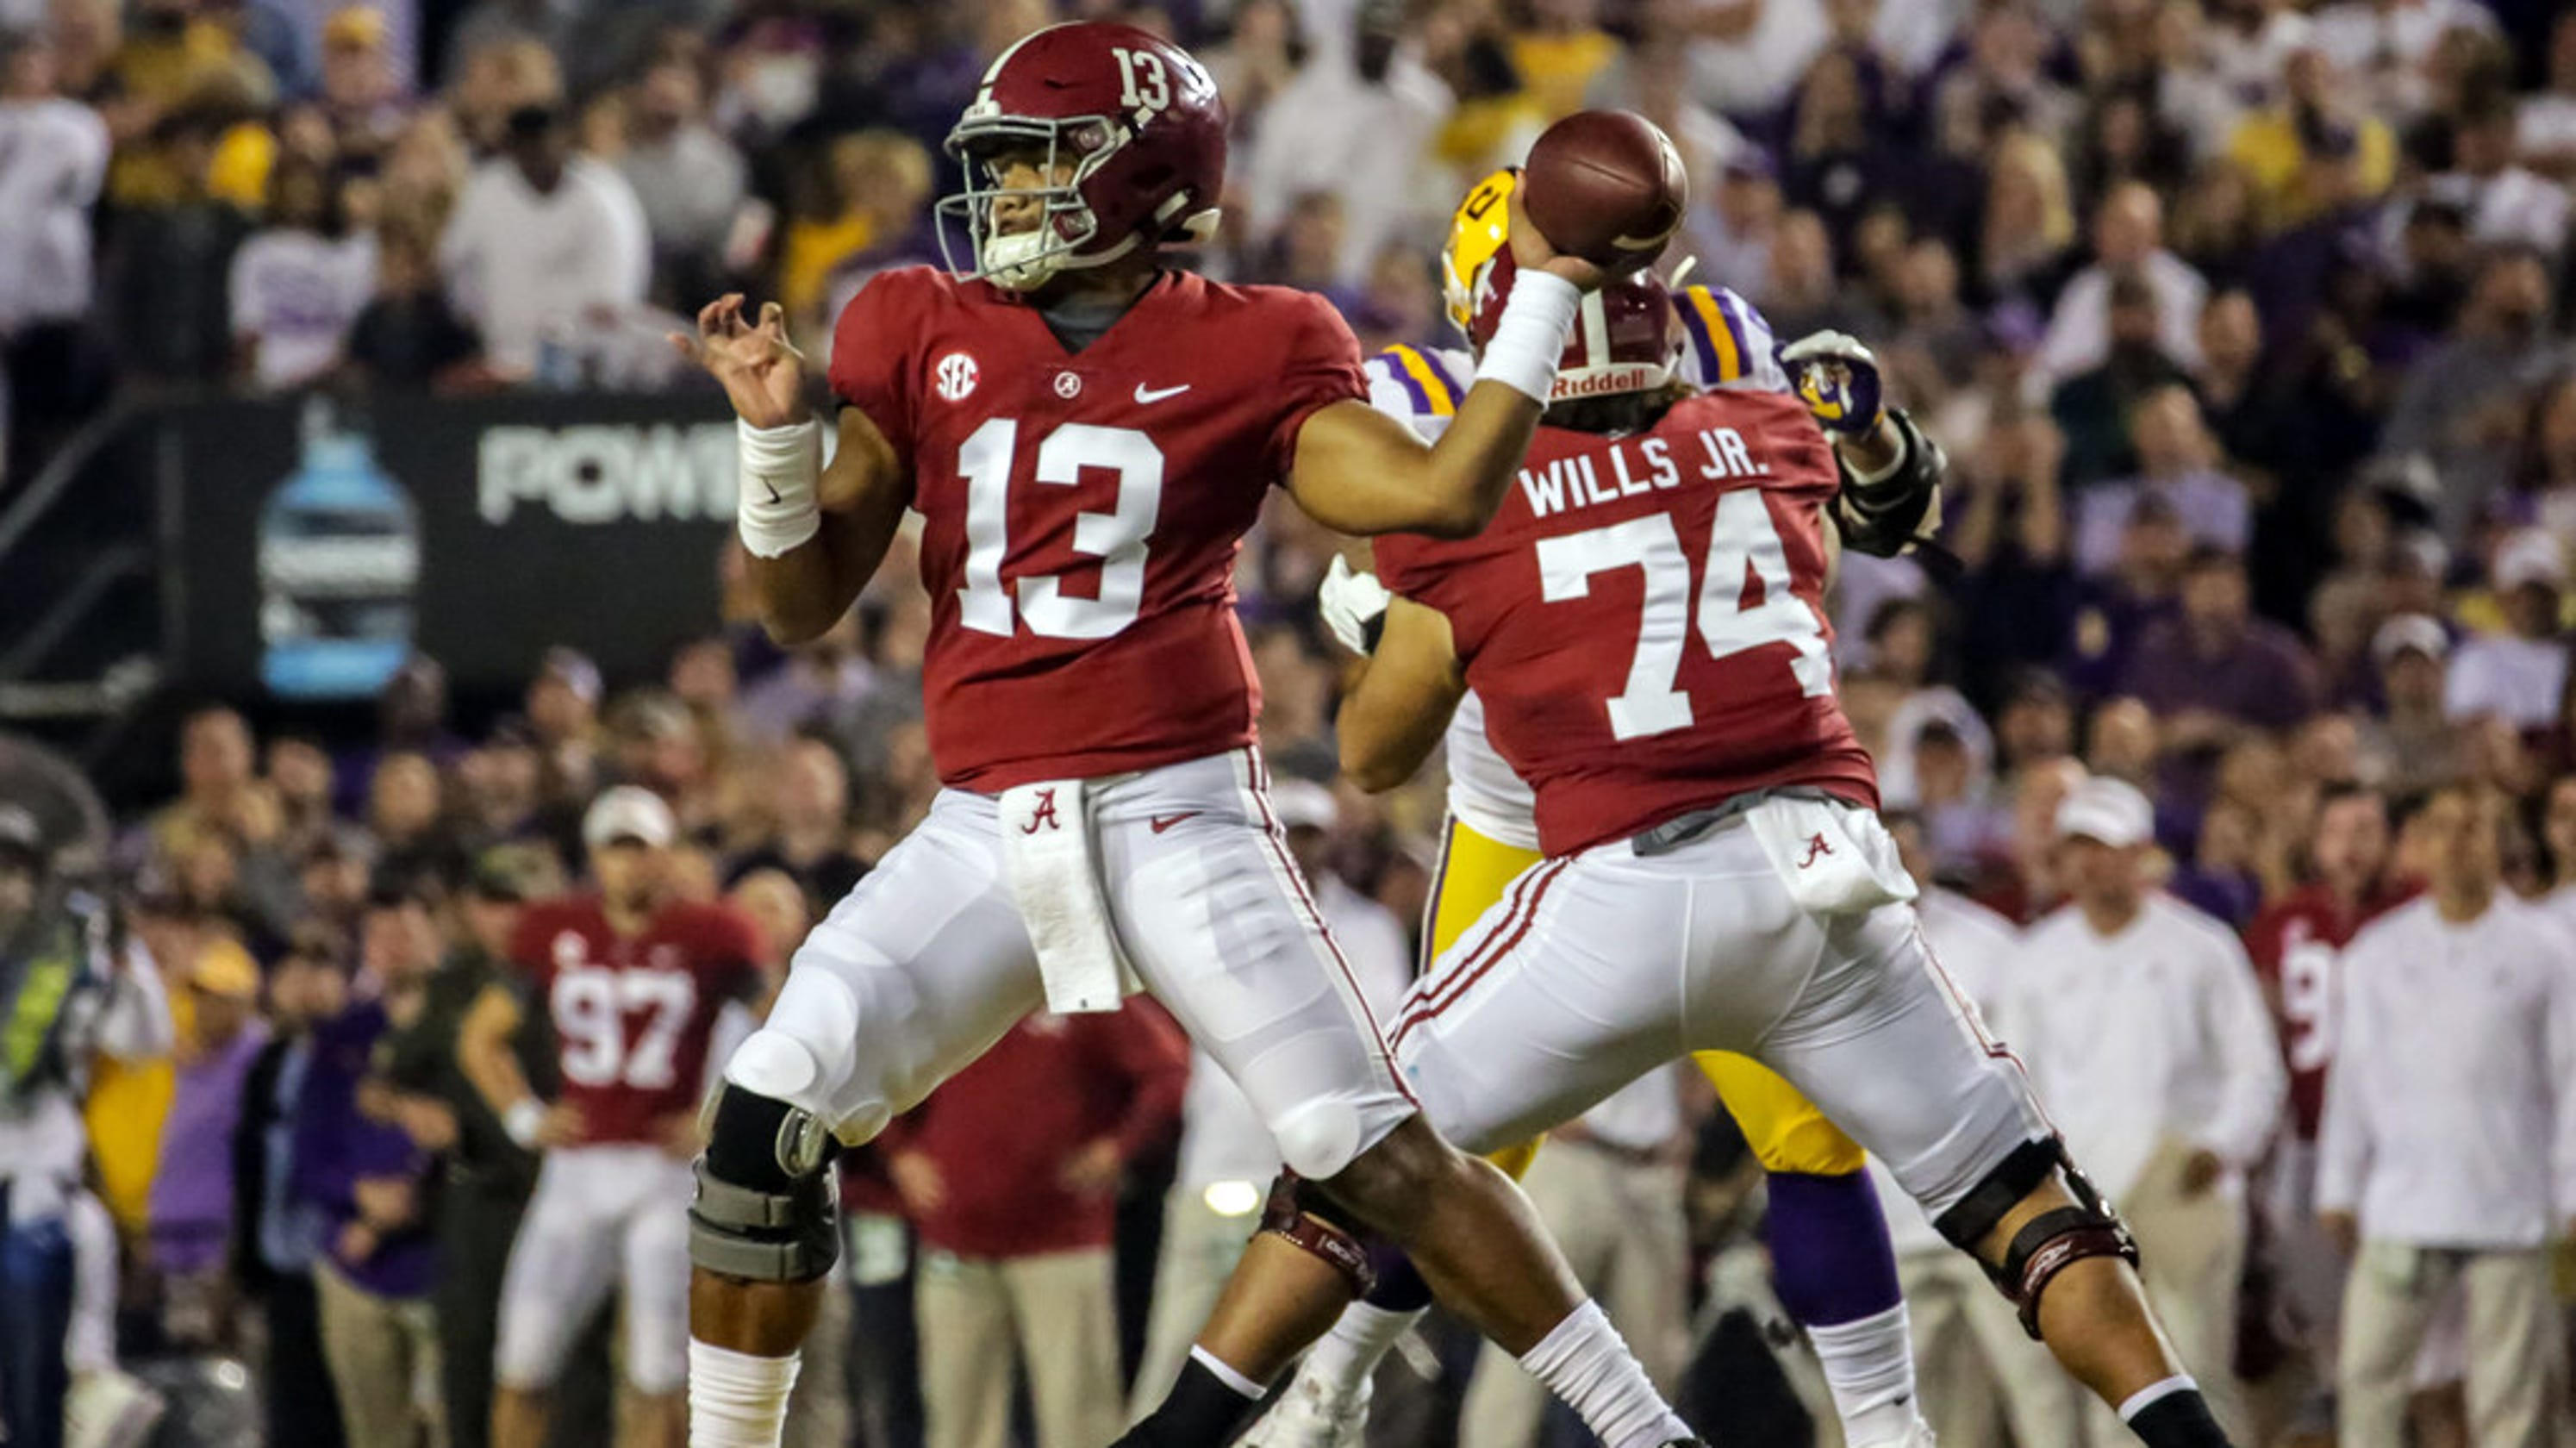 1 Alabama dominates with shutout of No. 4 LSU to lock up SEC West title a61af5e39